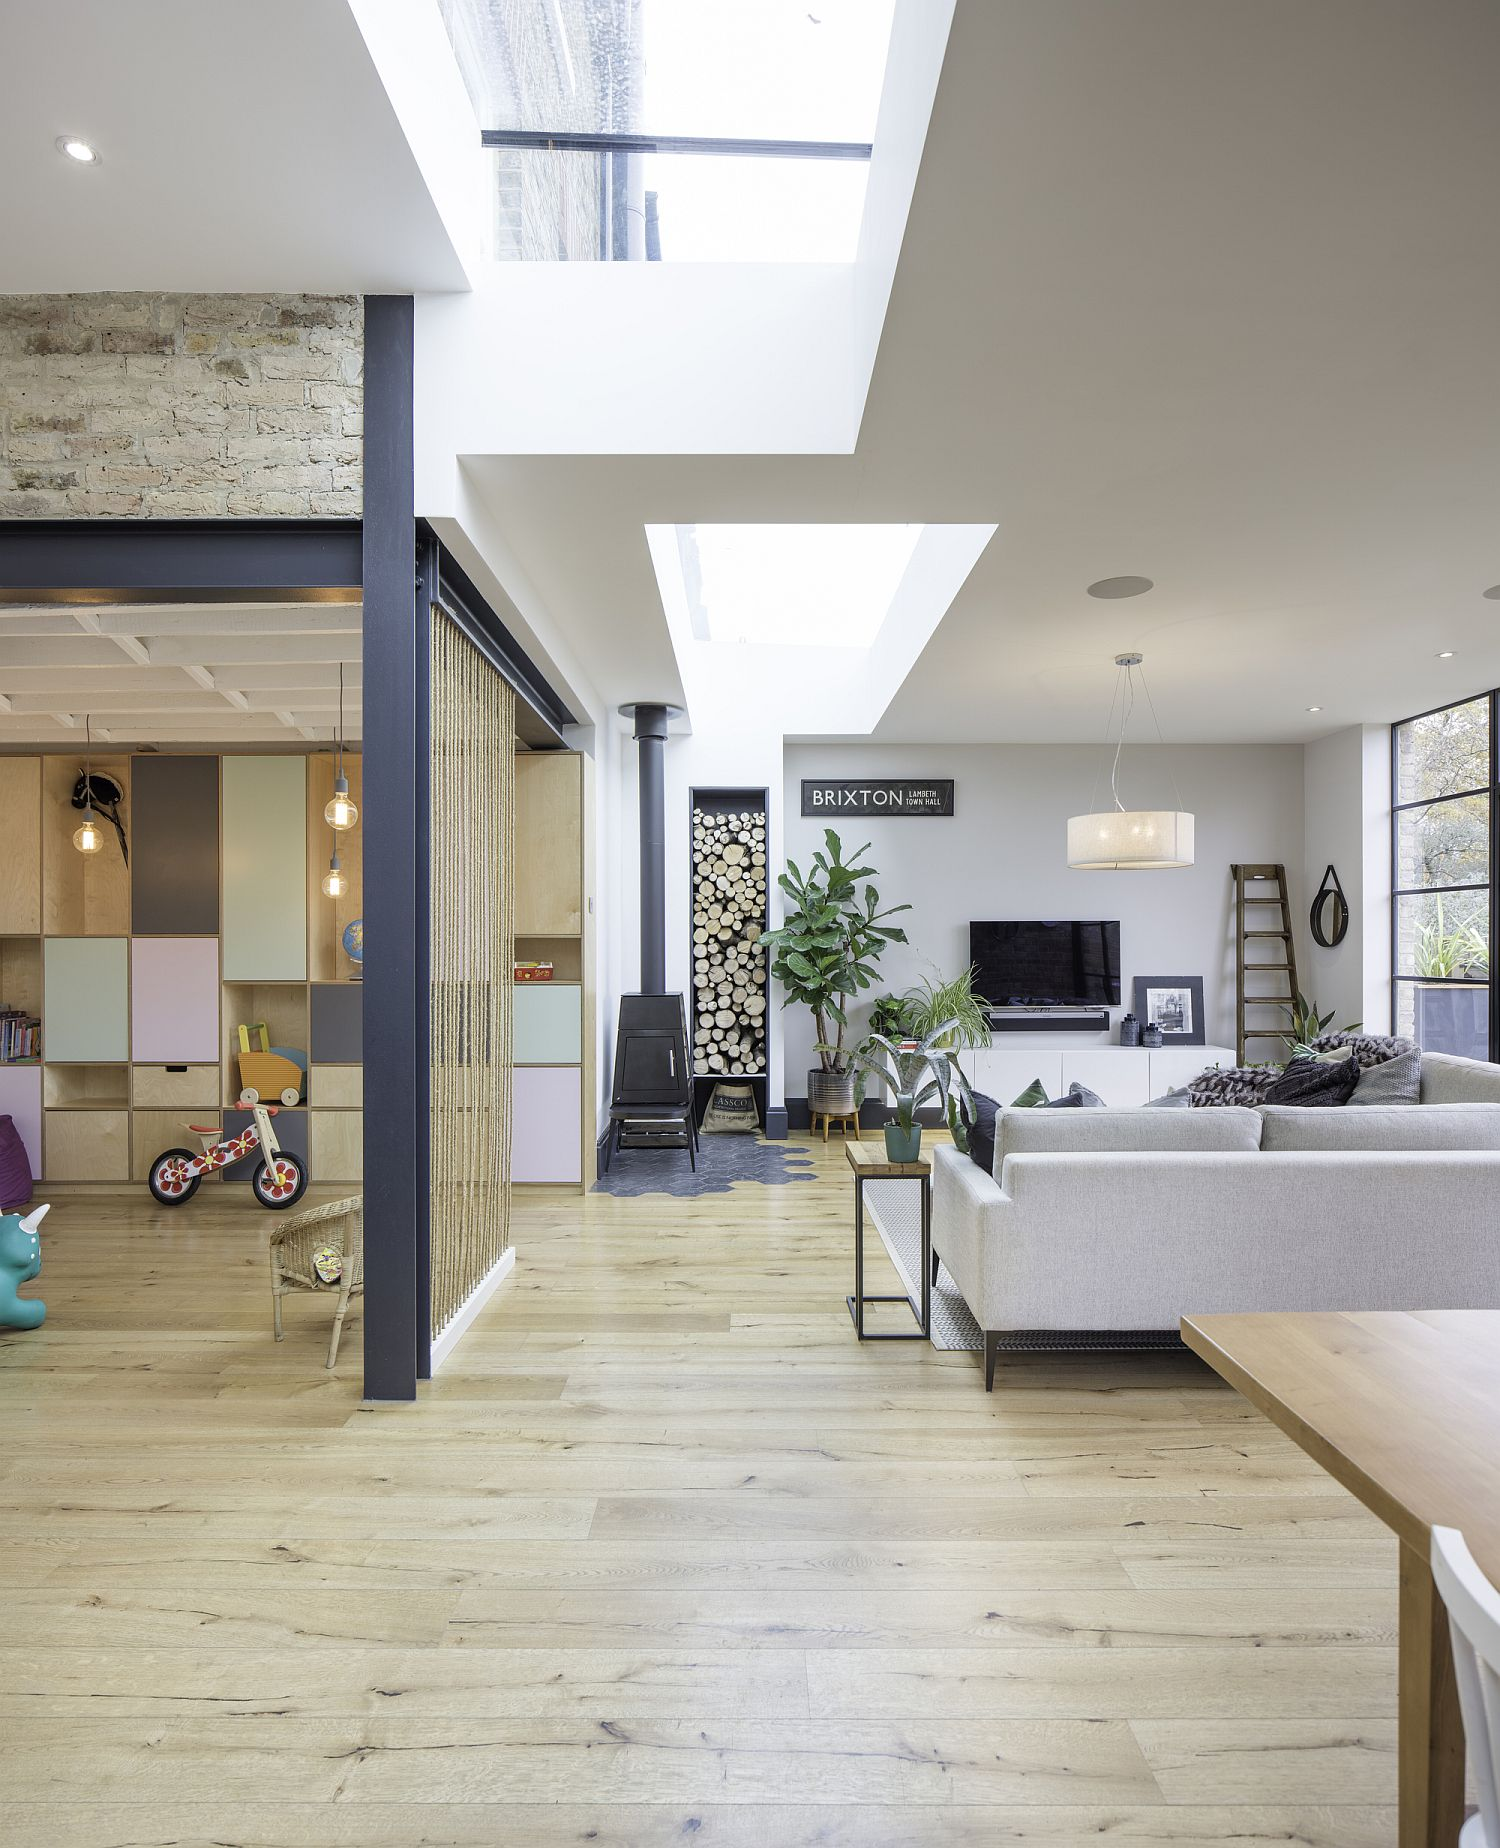 Different textures and finishes find space inside the lovely London home